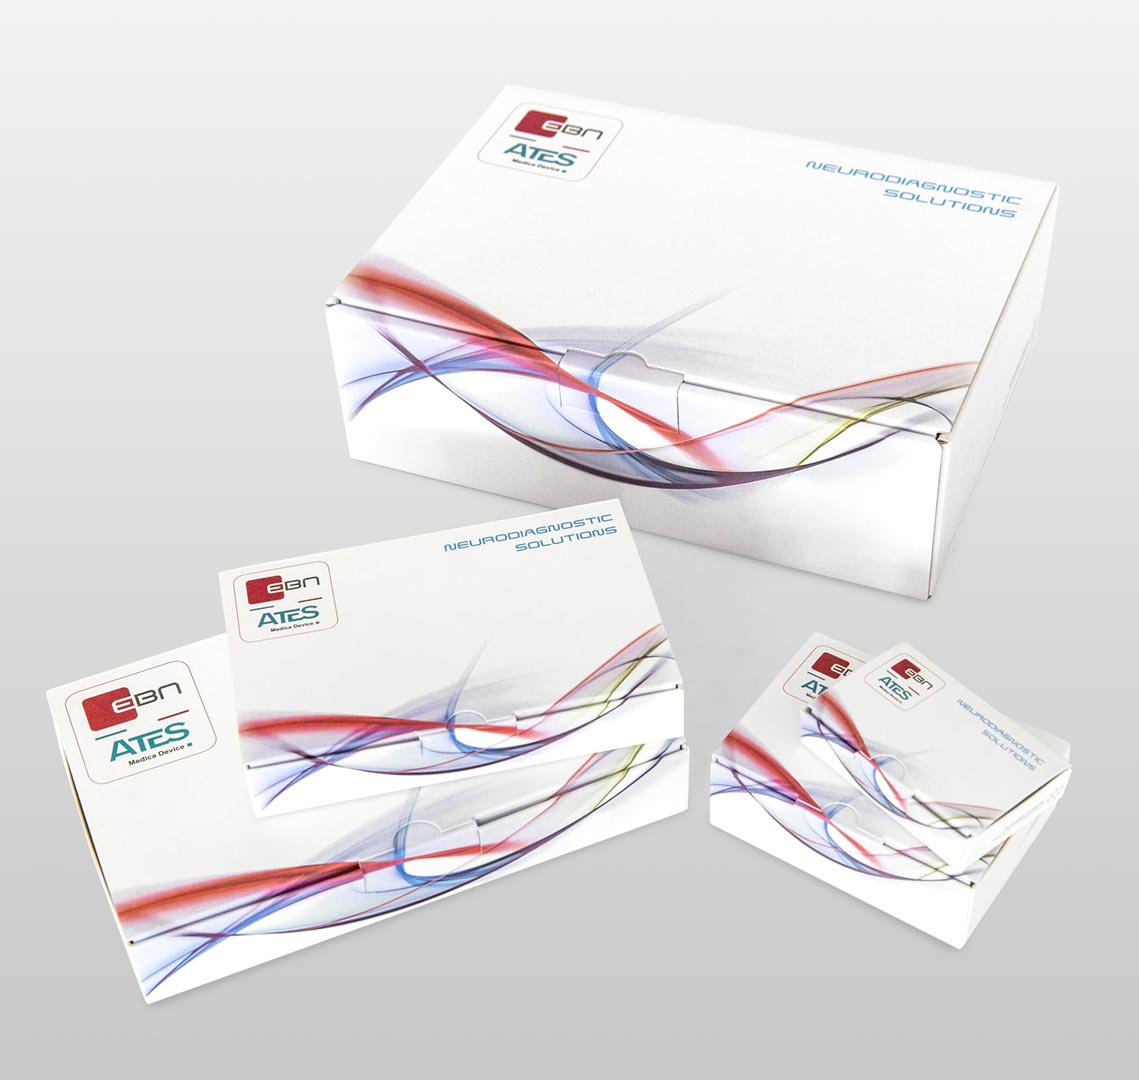 EBN ATES - Packaging